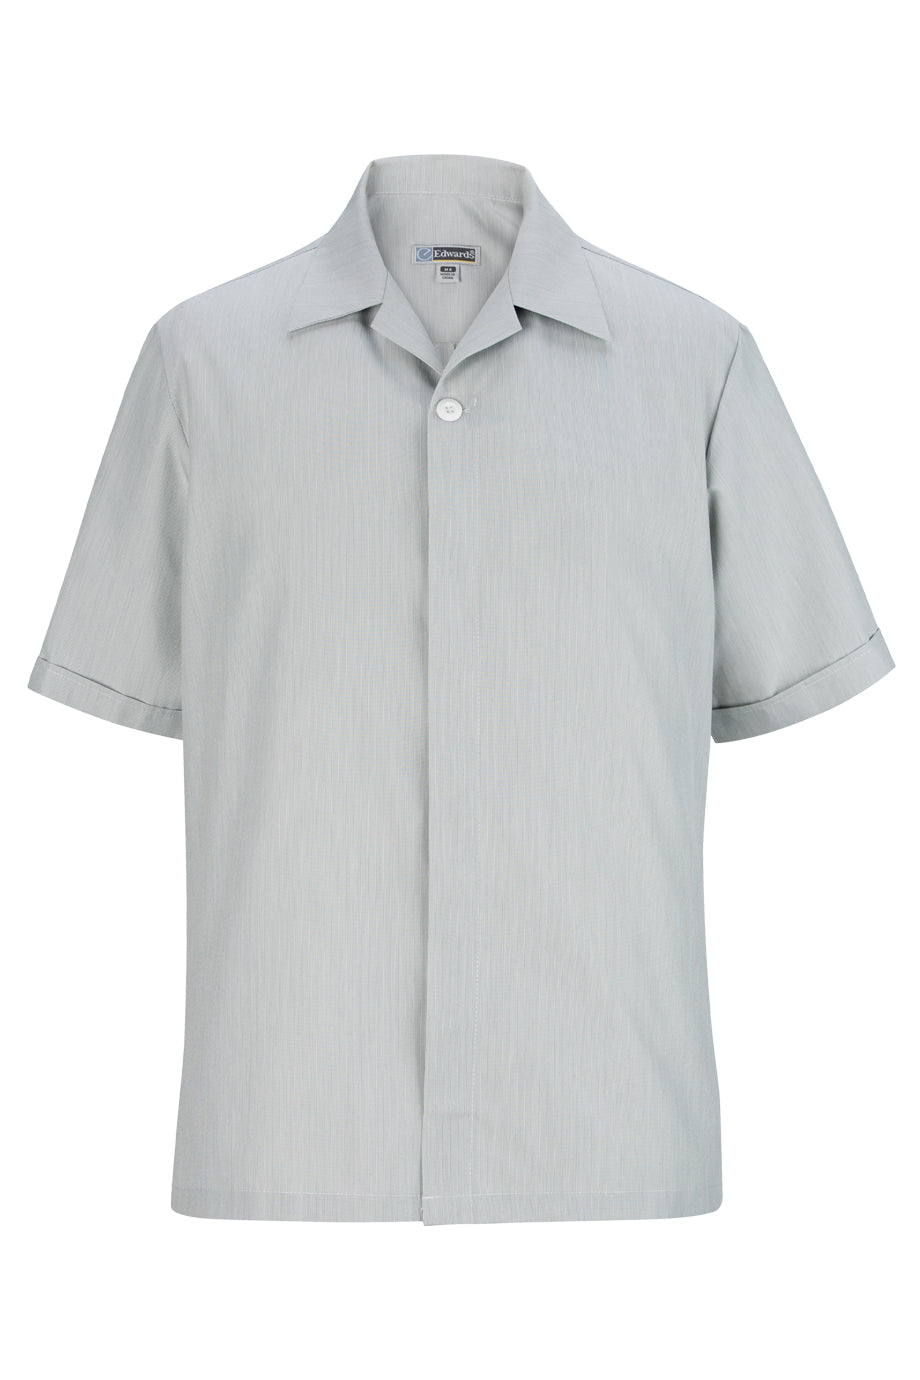 Men's Pincord Shirt - EconoLodge